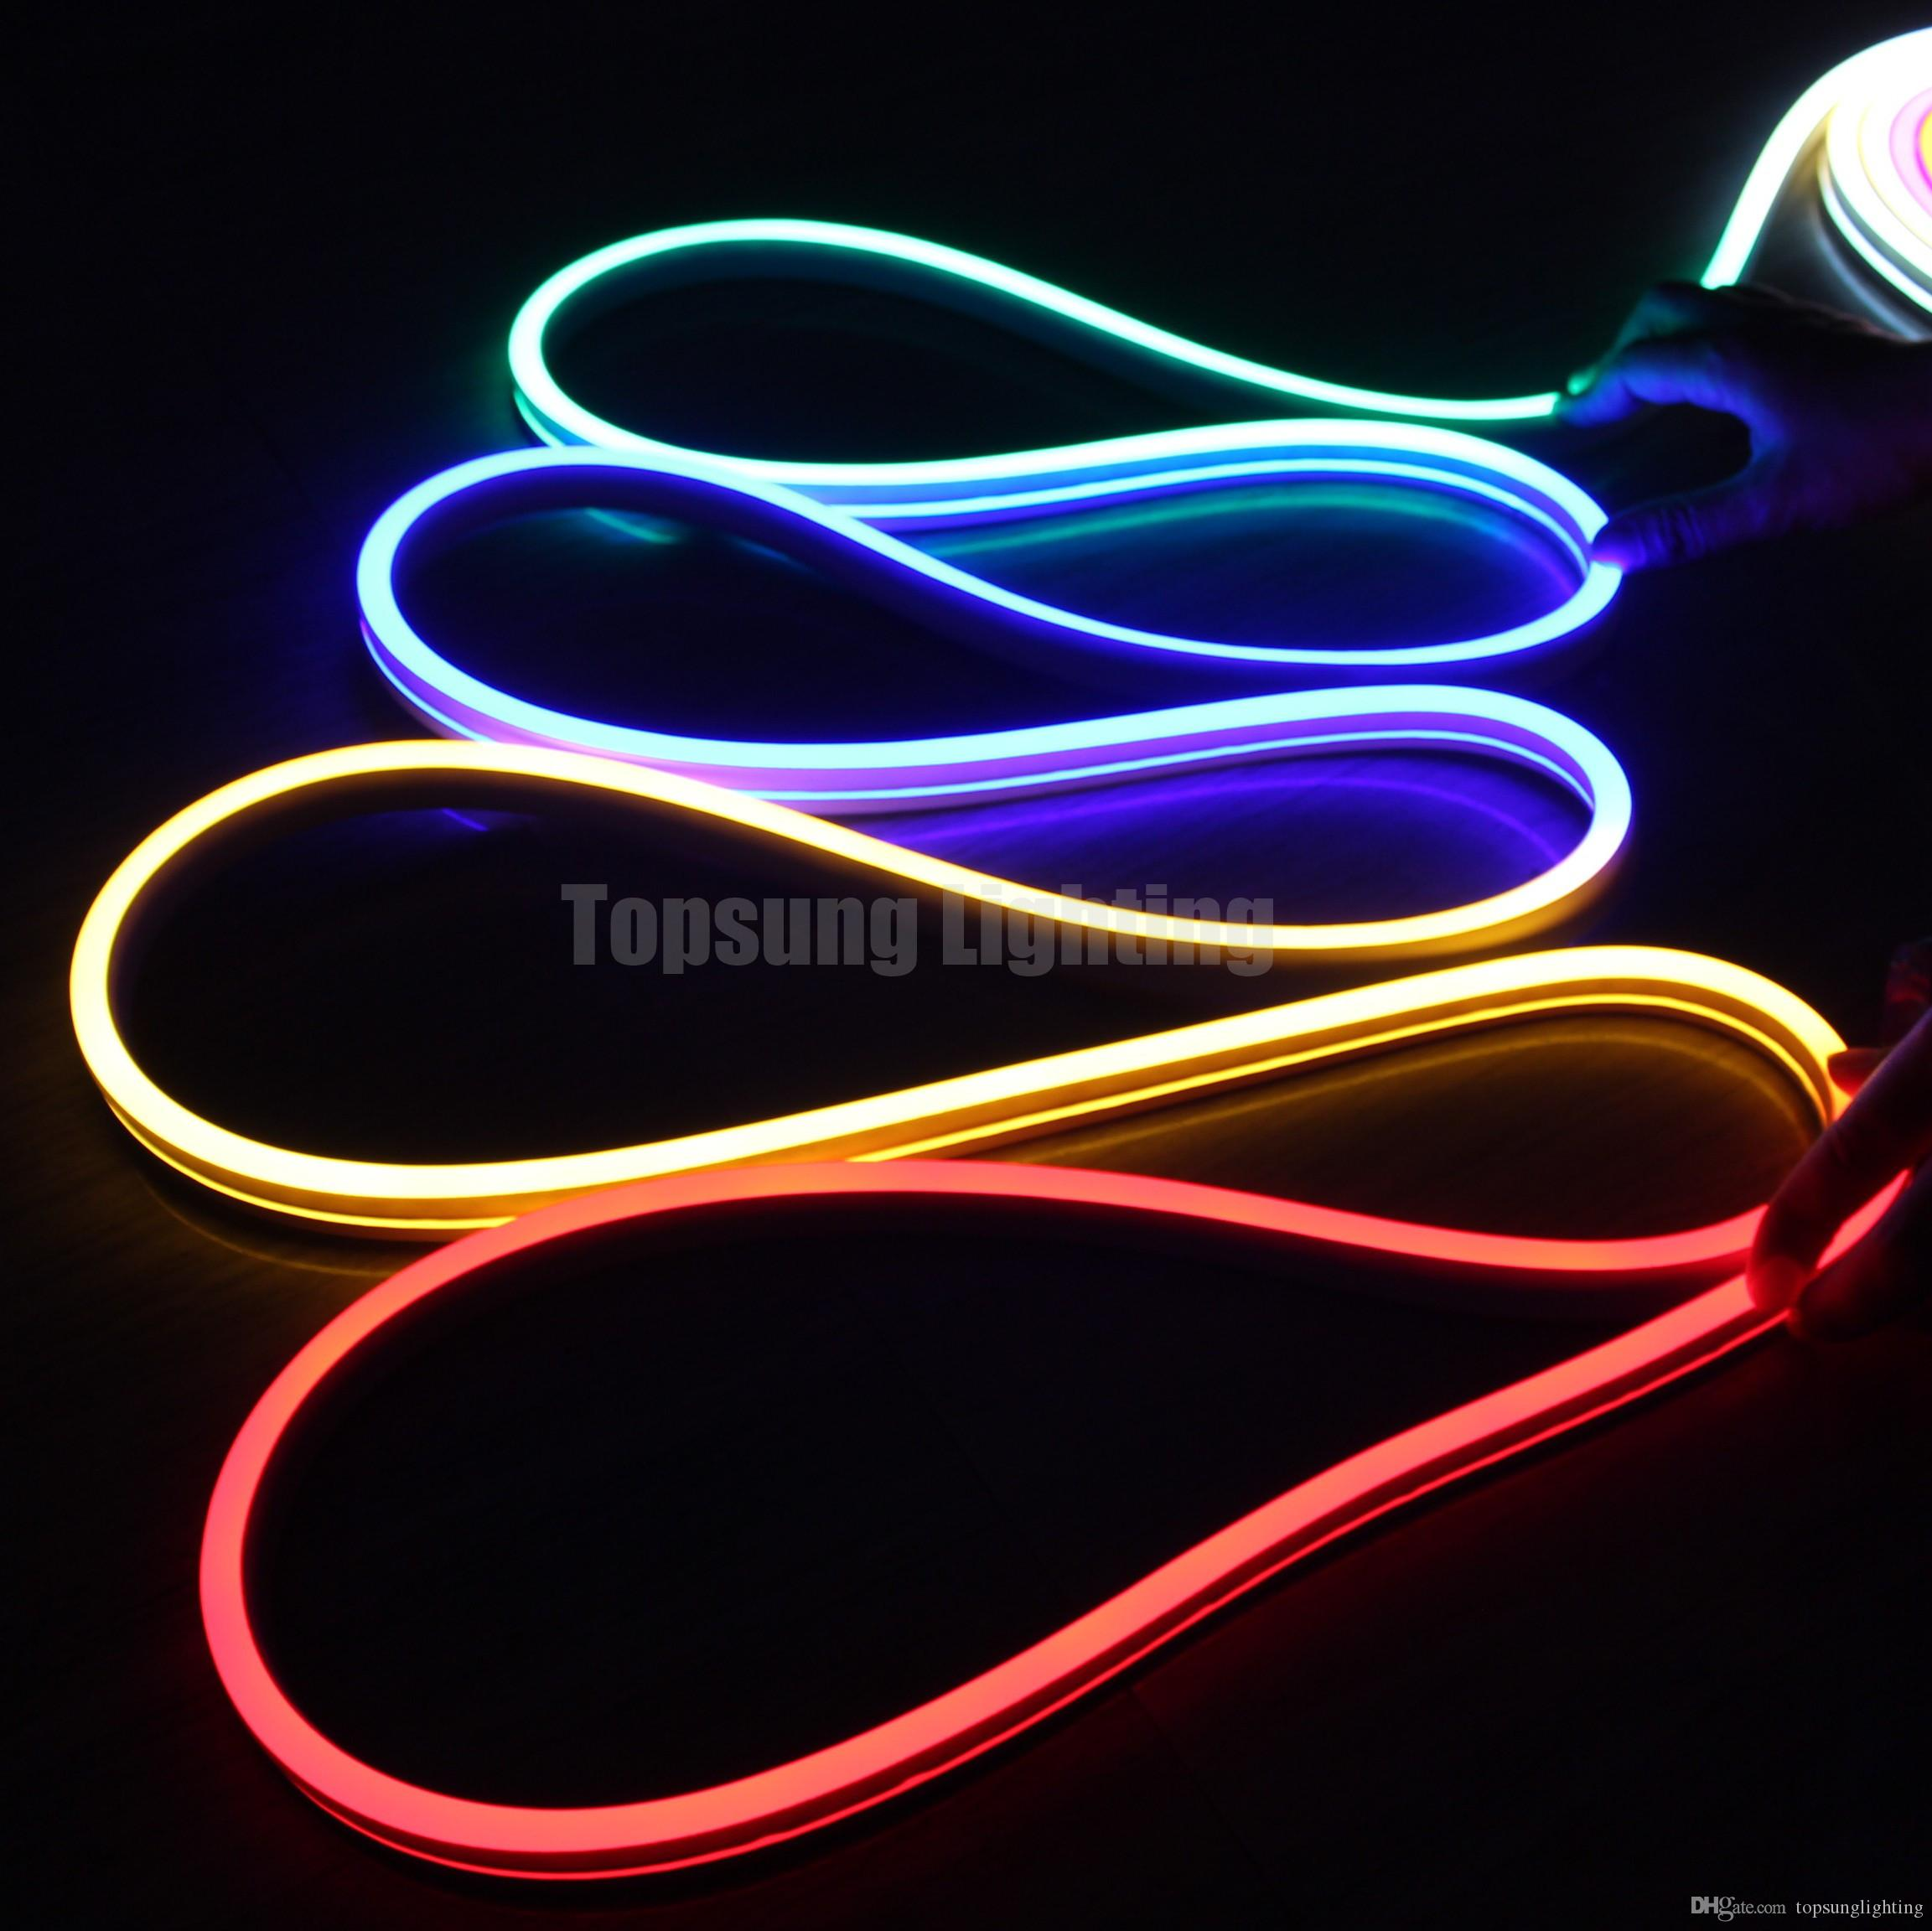 2018 hot sale 20m spool flexible strip flat ultra thin 24v led neon lighting rgb neon flex rope. Black Bedroom Furniture Sets. Home Design Ideas